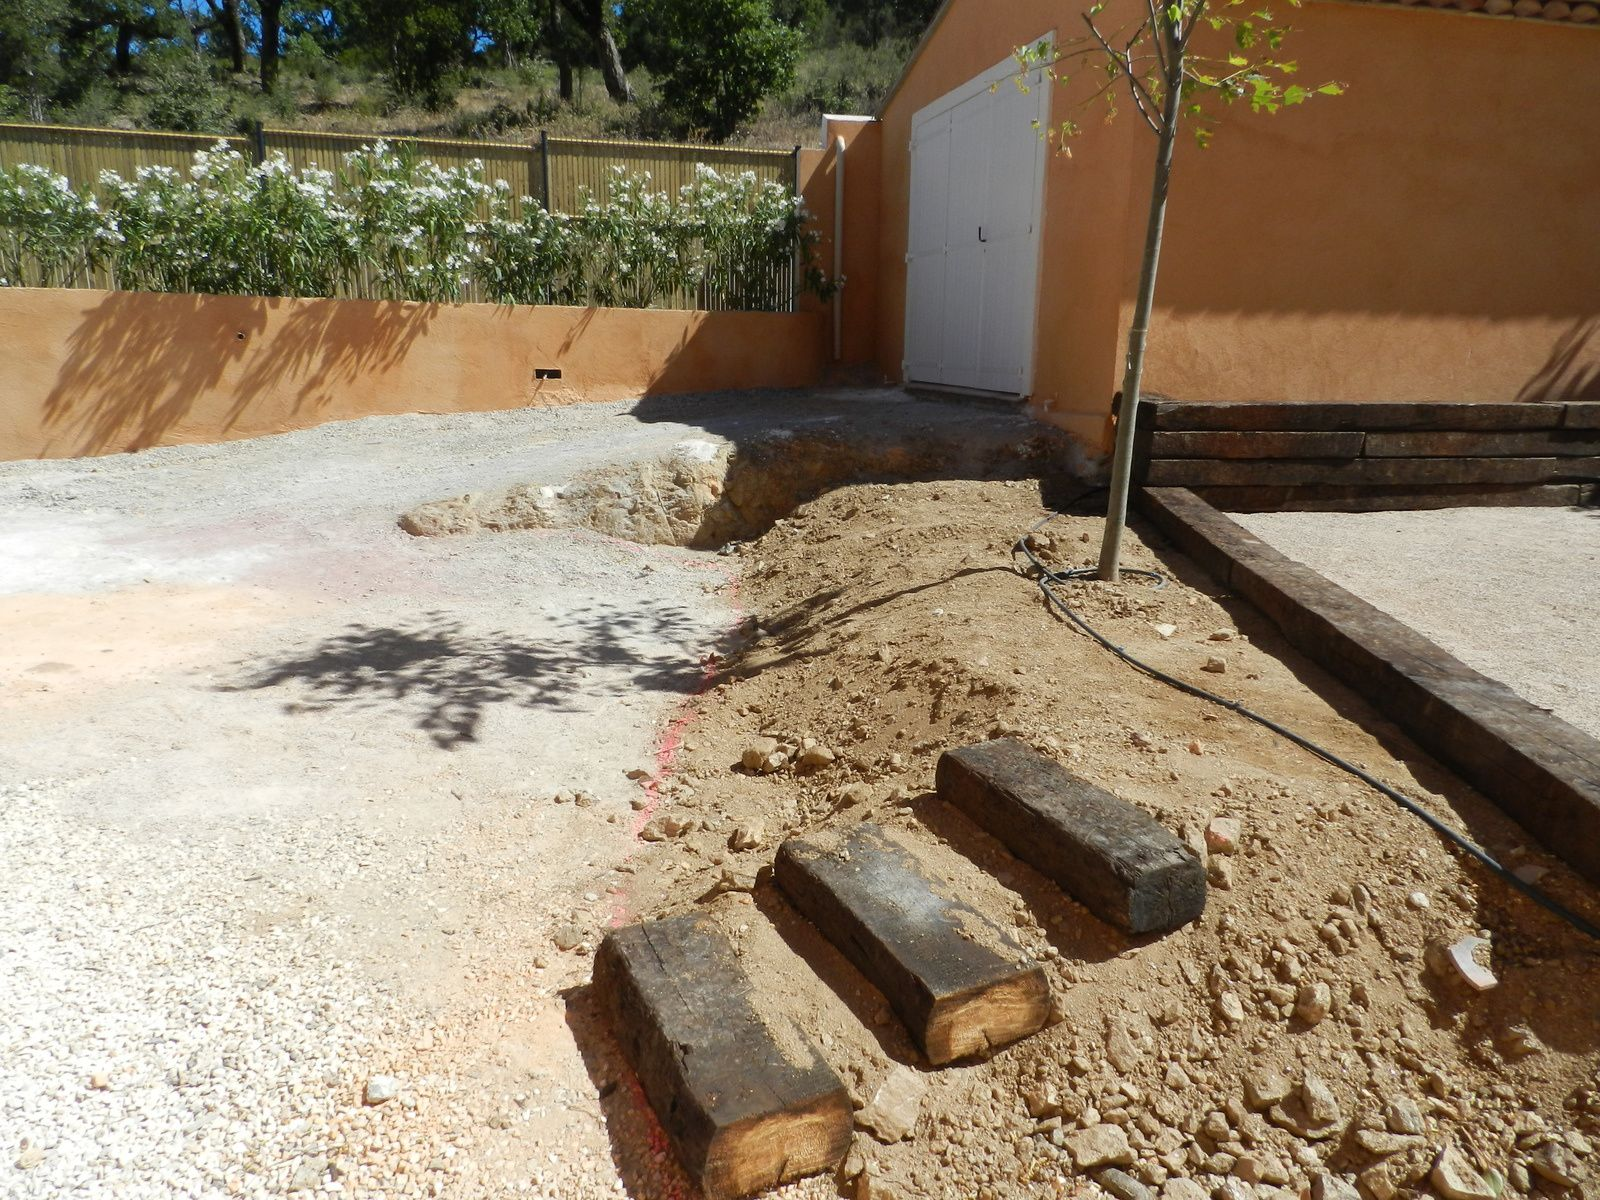 Am nagement d 39 un jardin grimaud for Amenagement d un jardin